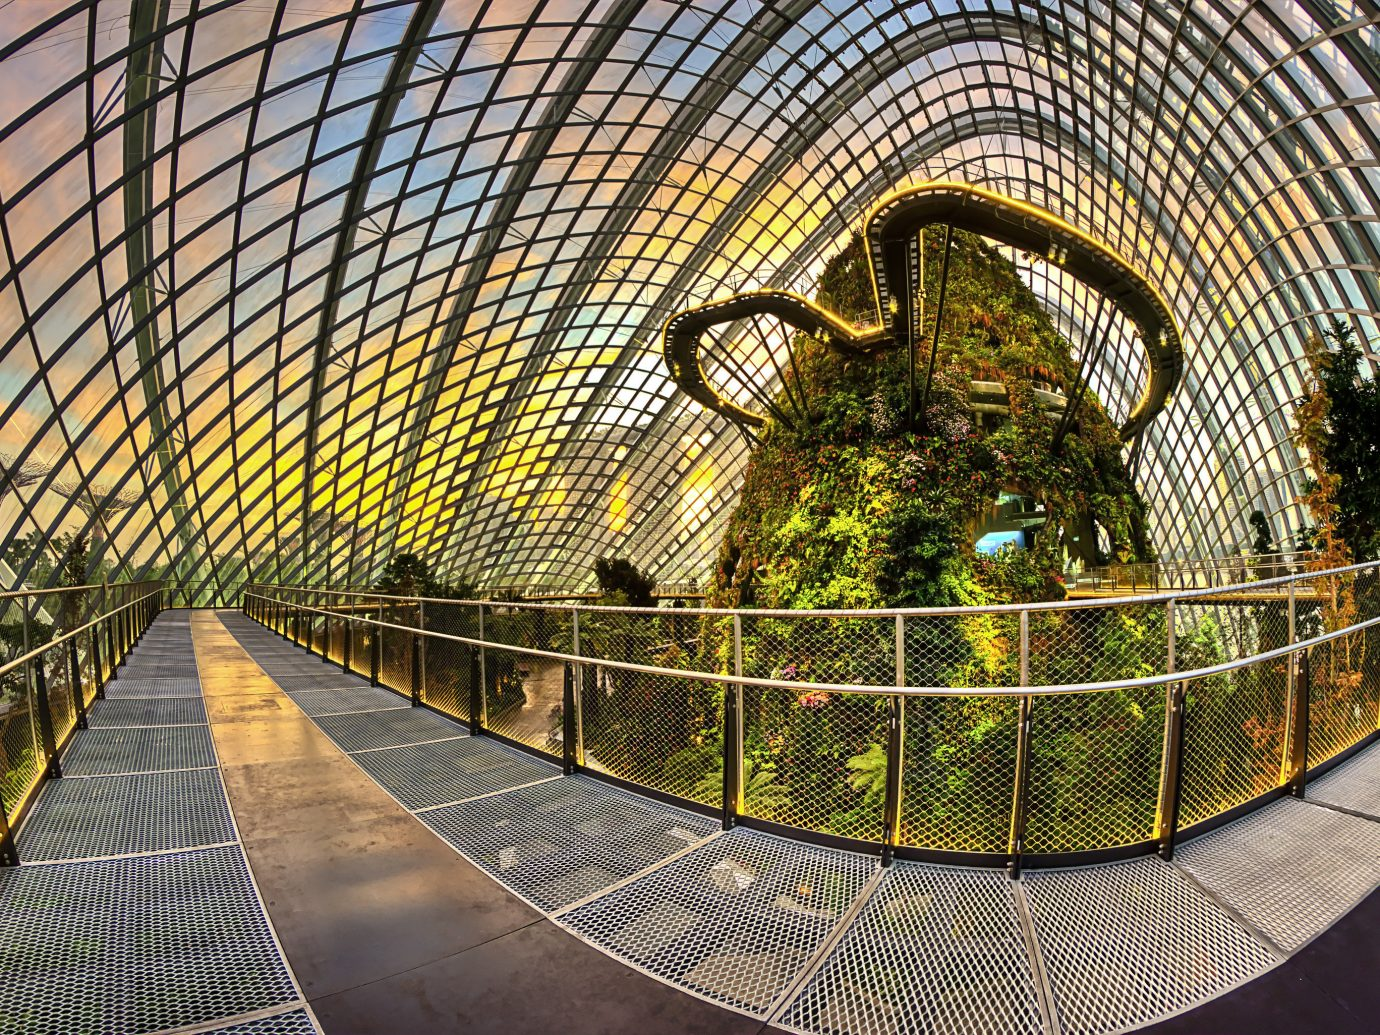 Offbeat Singapore Trip Ideas platform building metal rail urban area Architecture symmetry arch stair net subway railing walkway